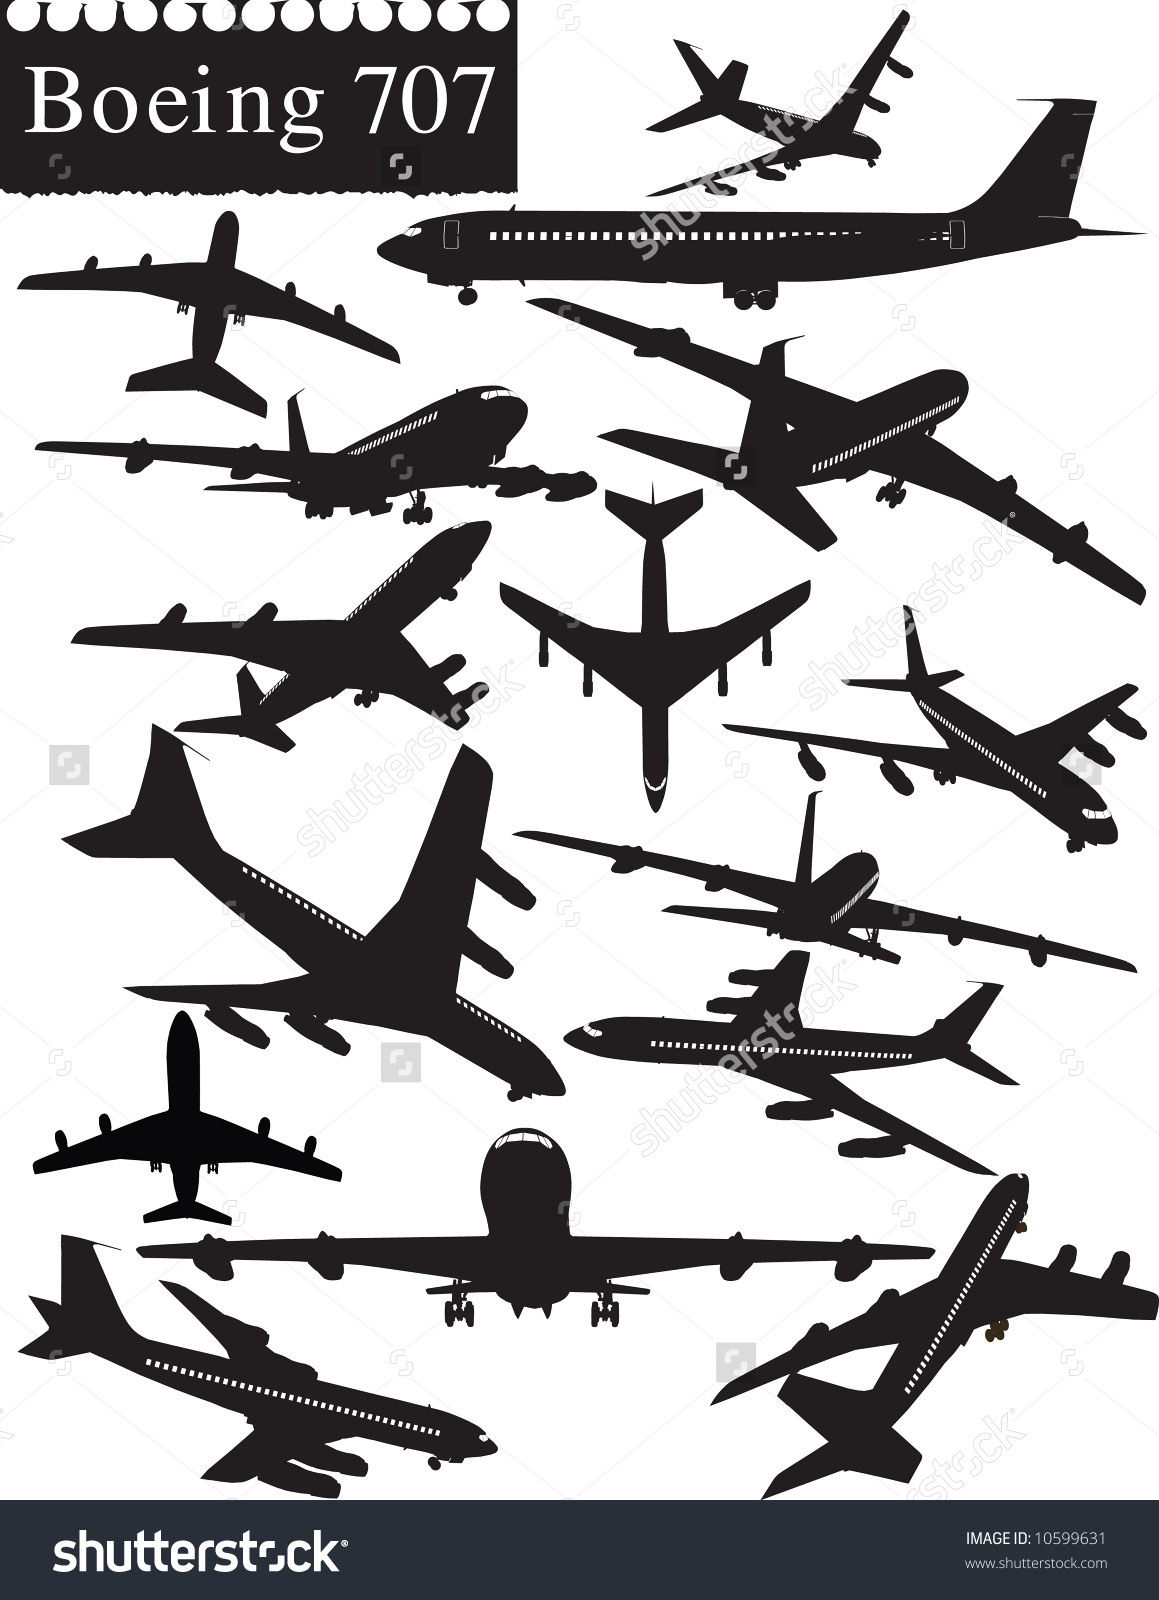 Boeing 707 Stock Vector Illustration 10599631 : Shutterstock.